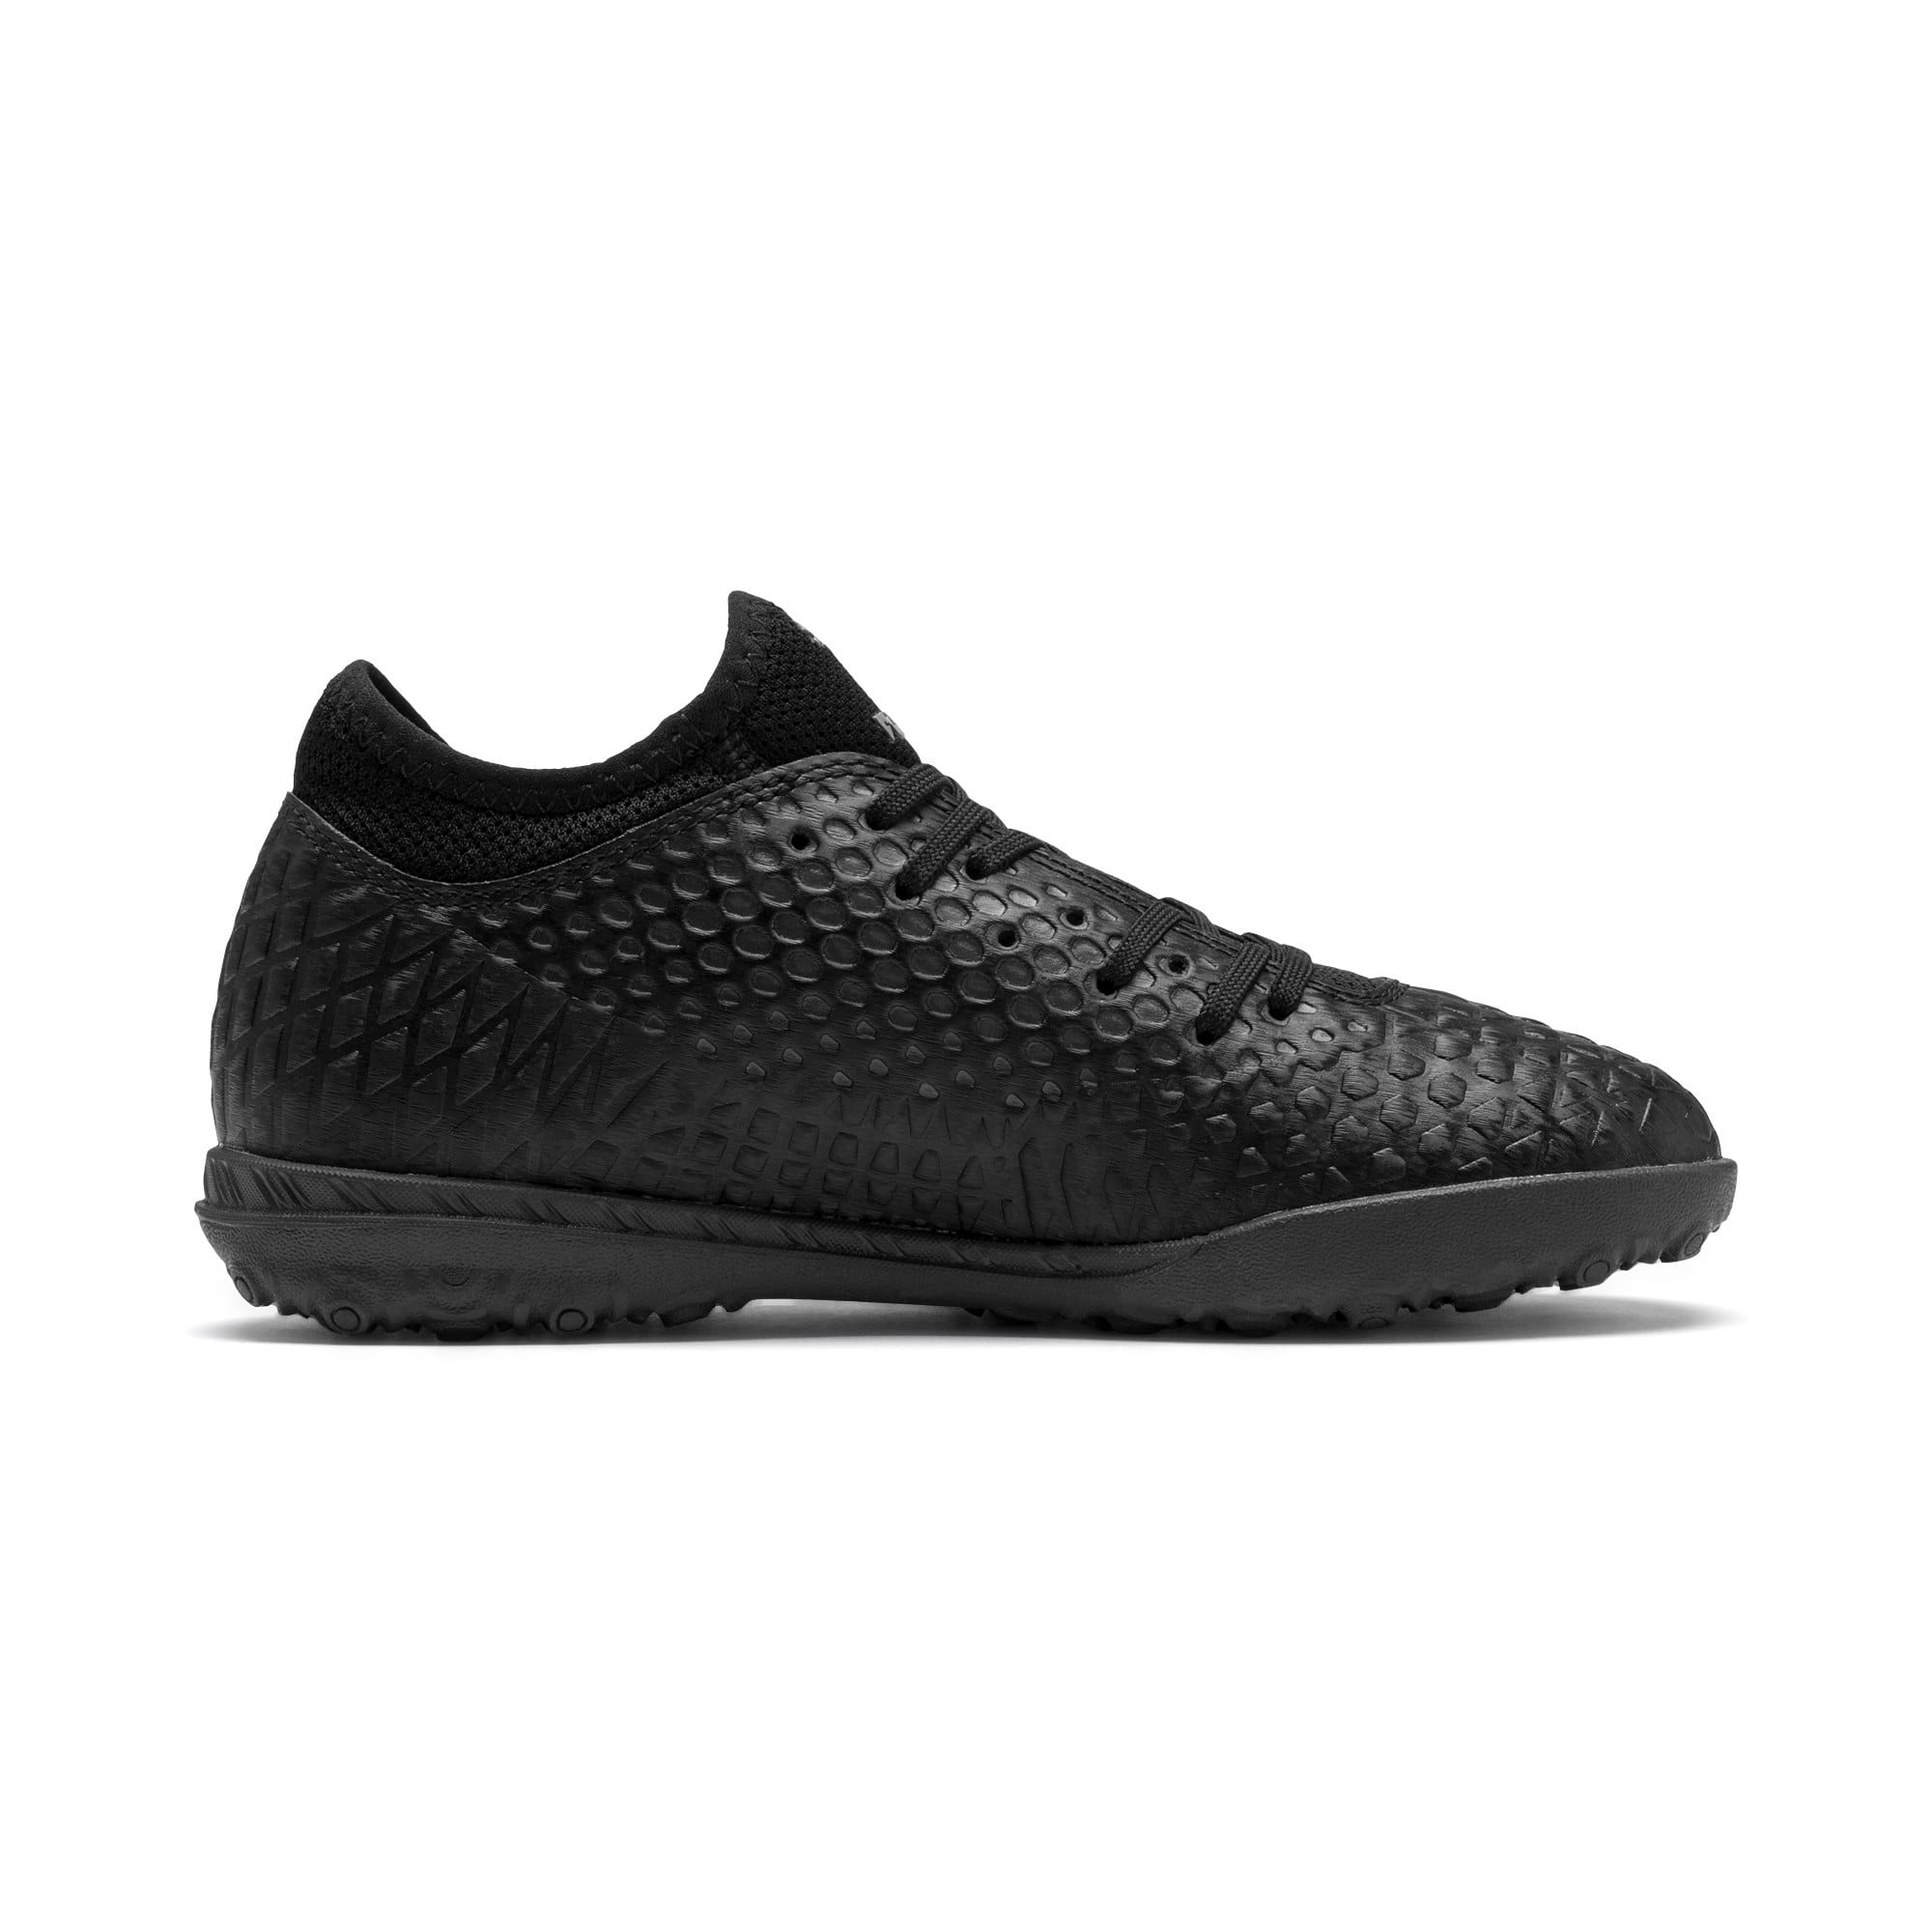 Thumbnail 5 of FUTURE 4.4 TT Youth Football Boots, Black-Black-Puma Aged Silver, medium